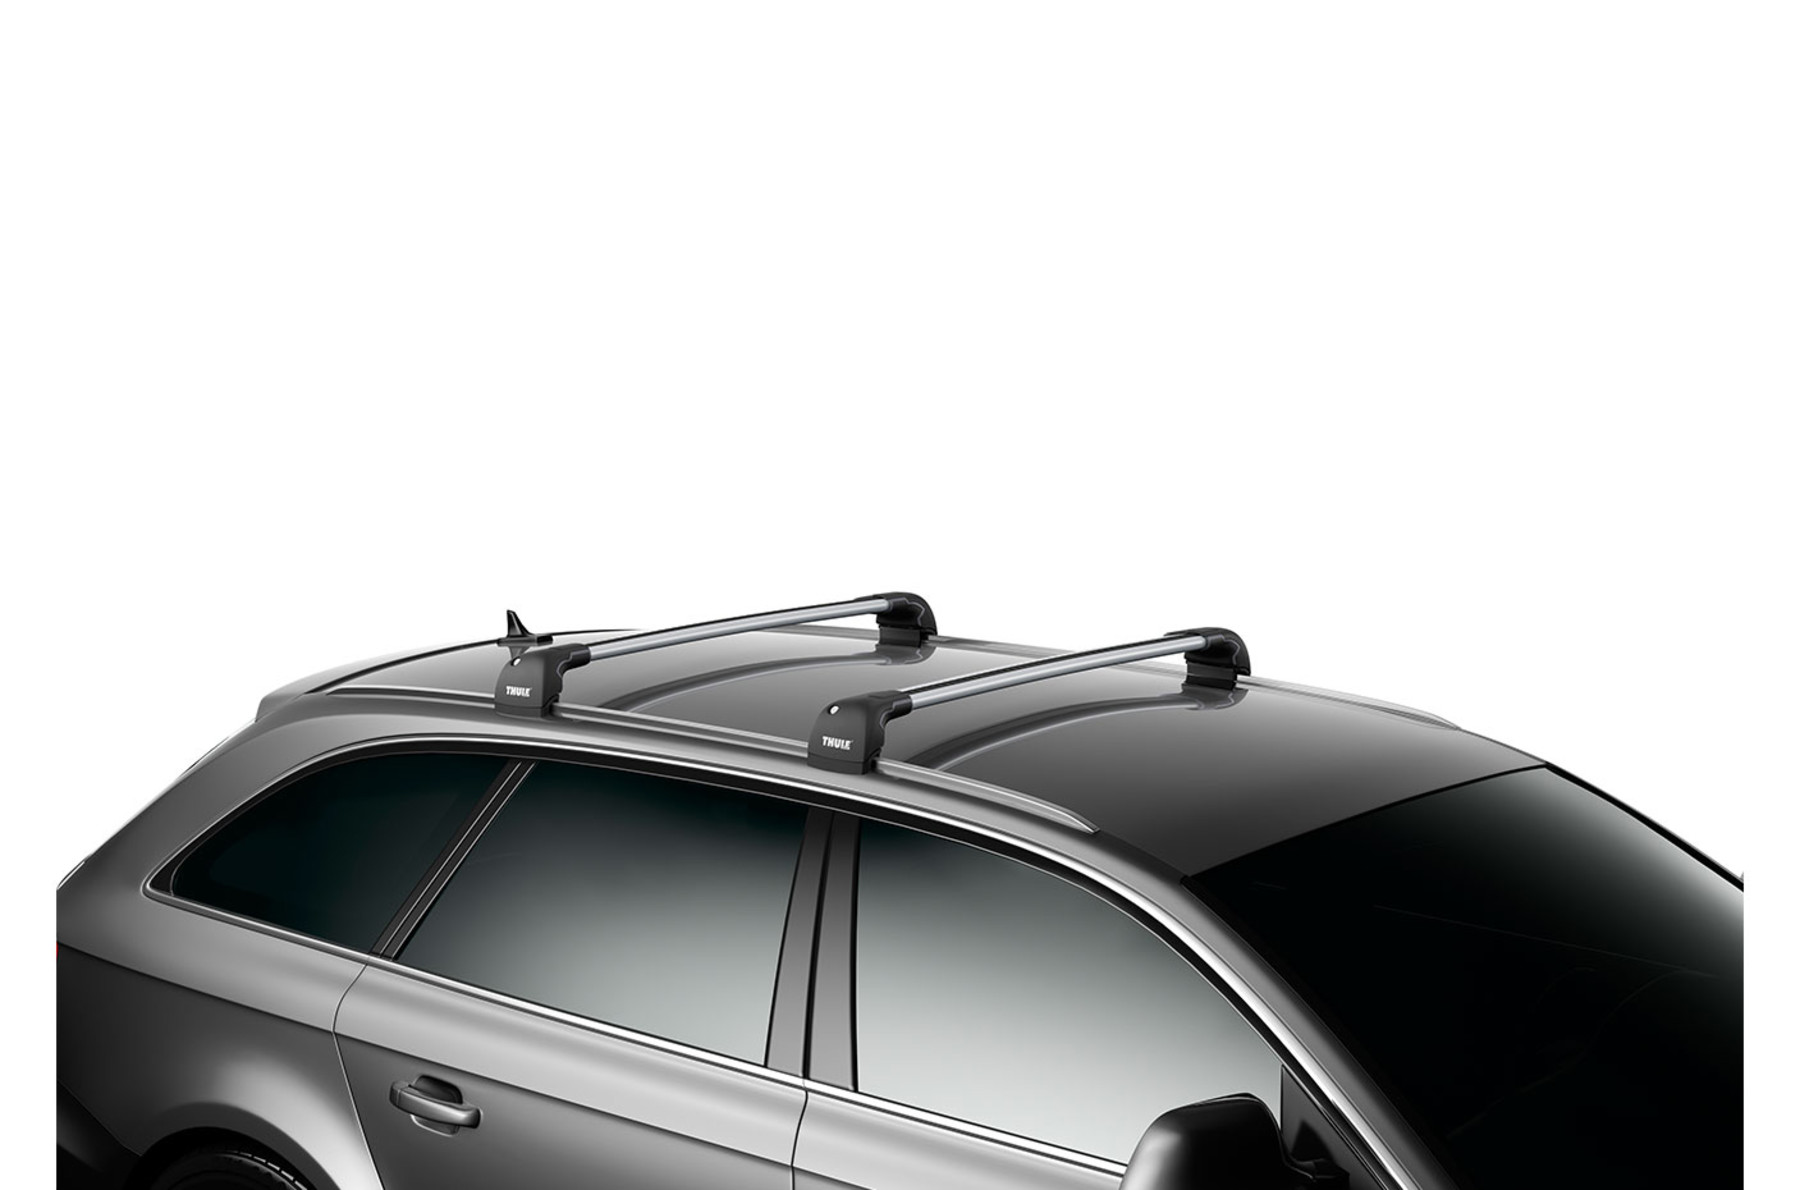 Car rack Thule WingBar Edge 959 on car